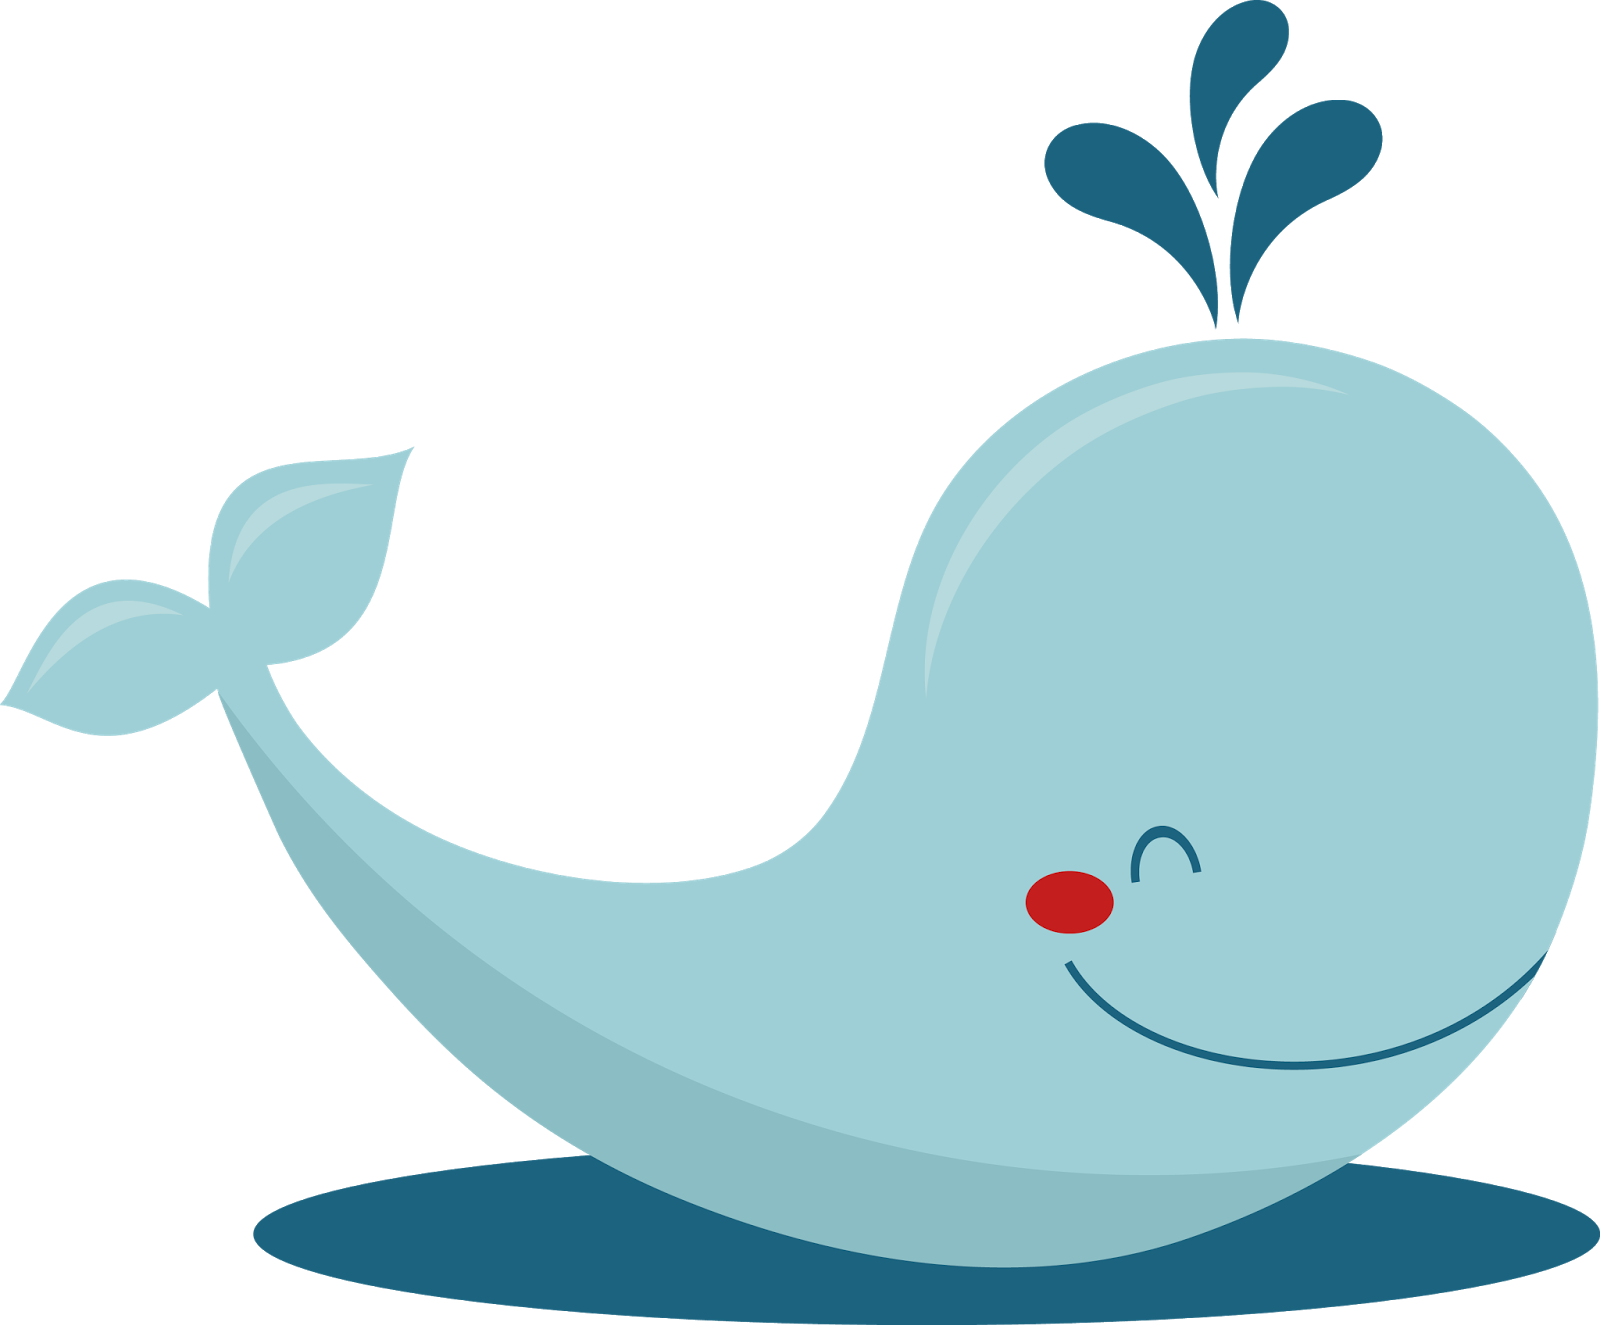 Whale clipart chibi. Cute pictures of whales